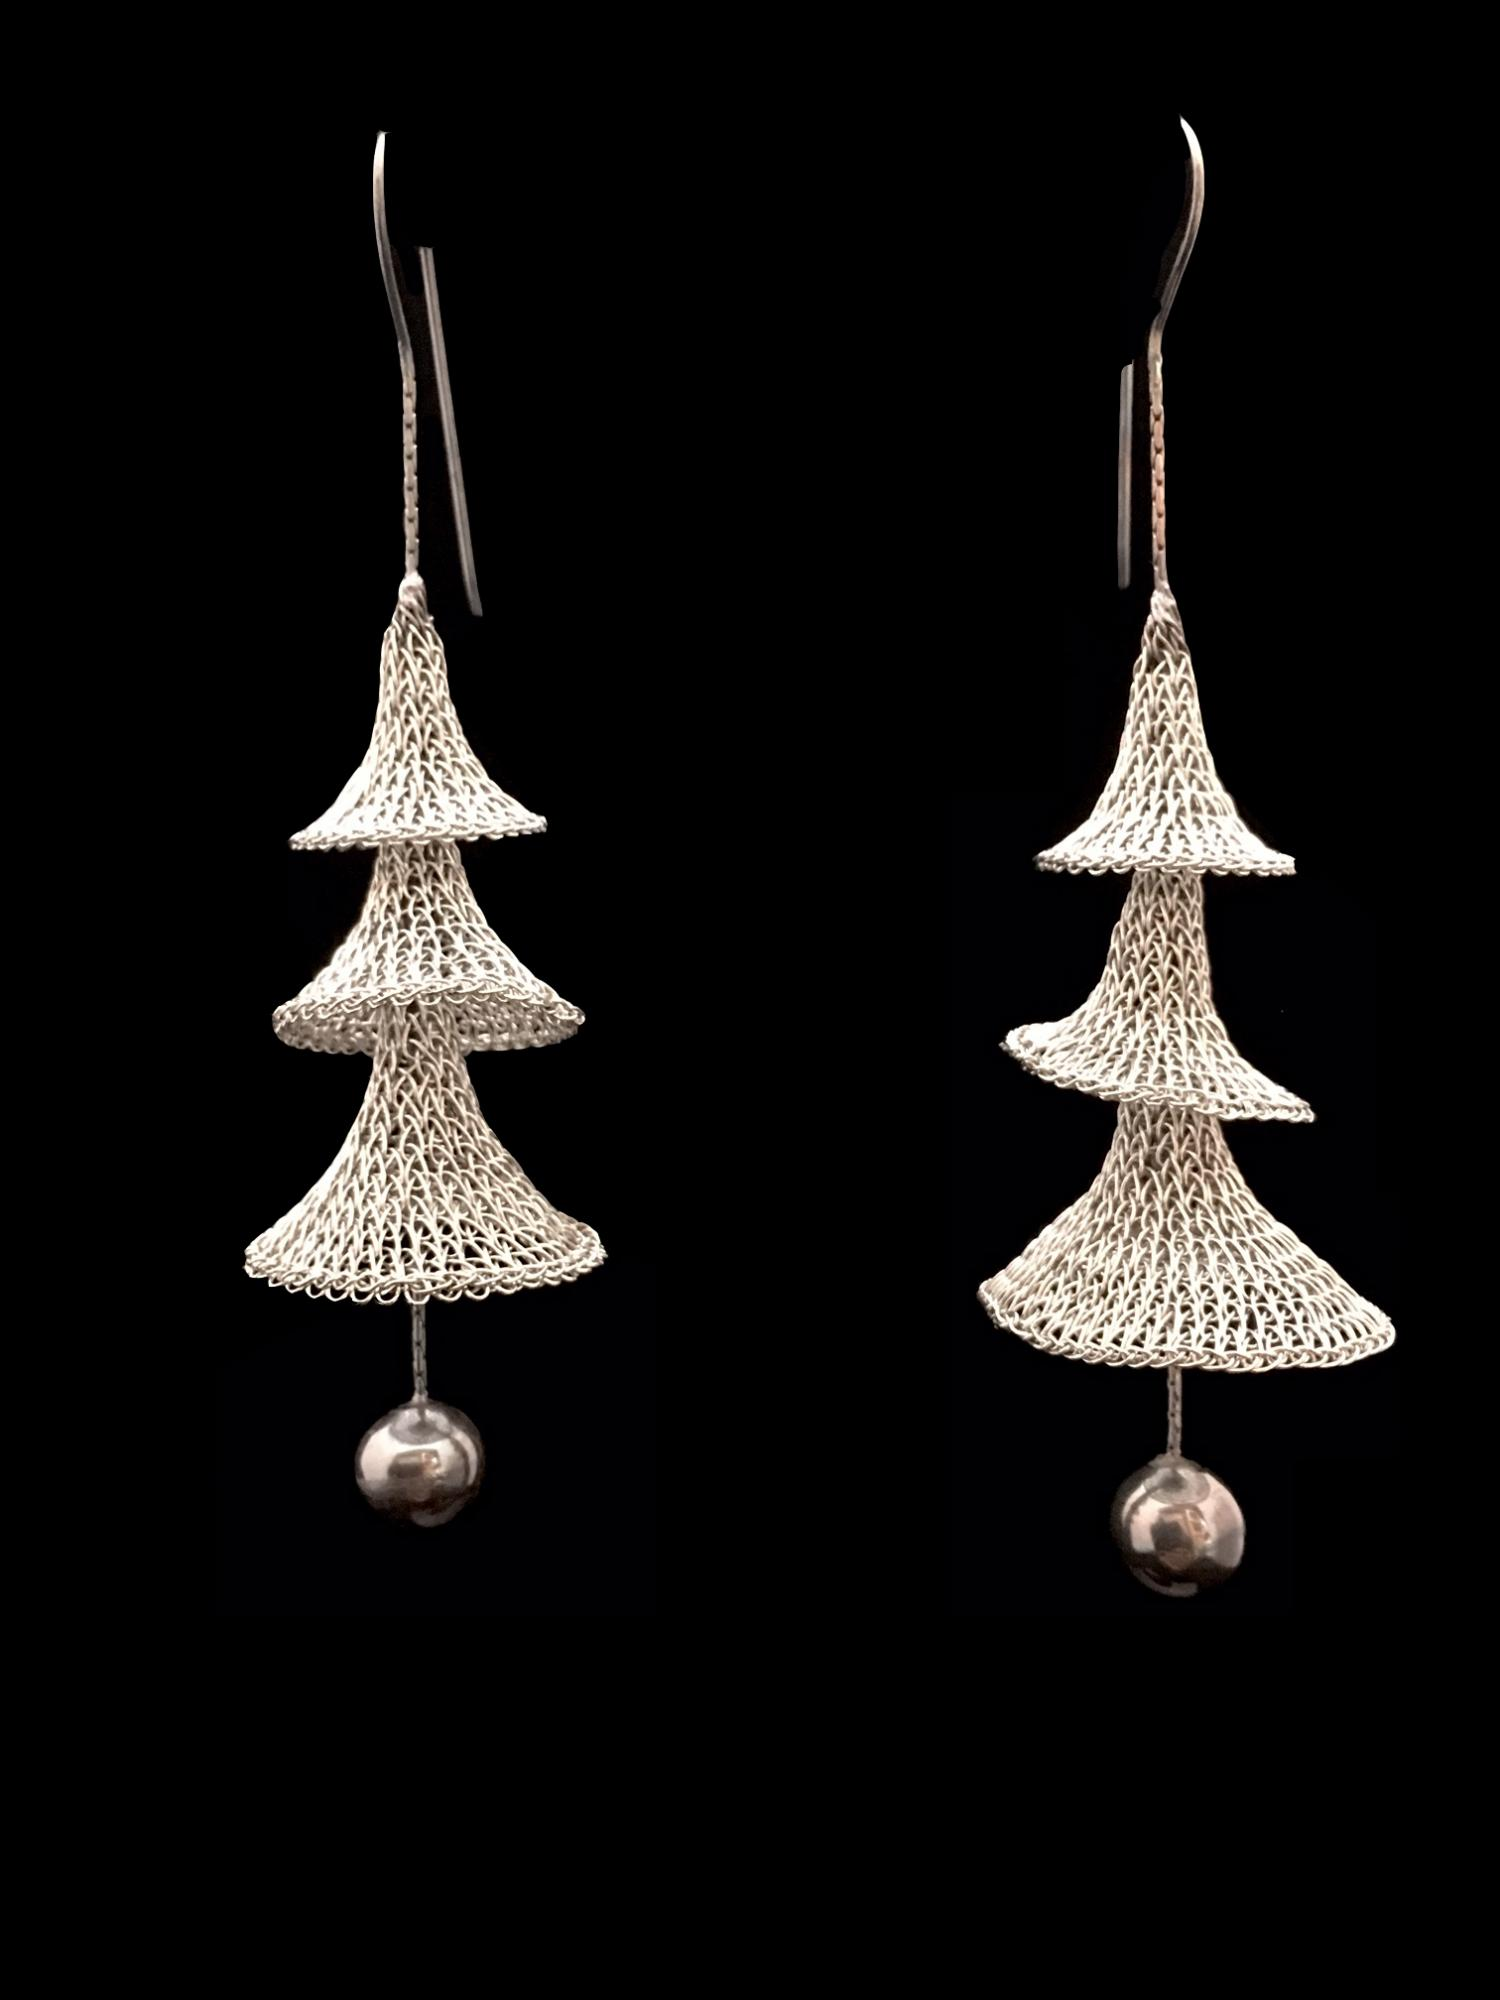 Woven Stainless Steel Earrings (42ST) - Sold